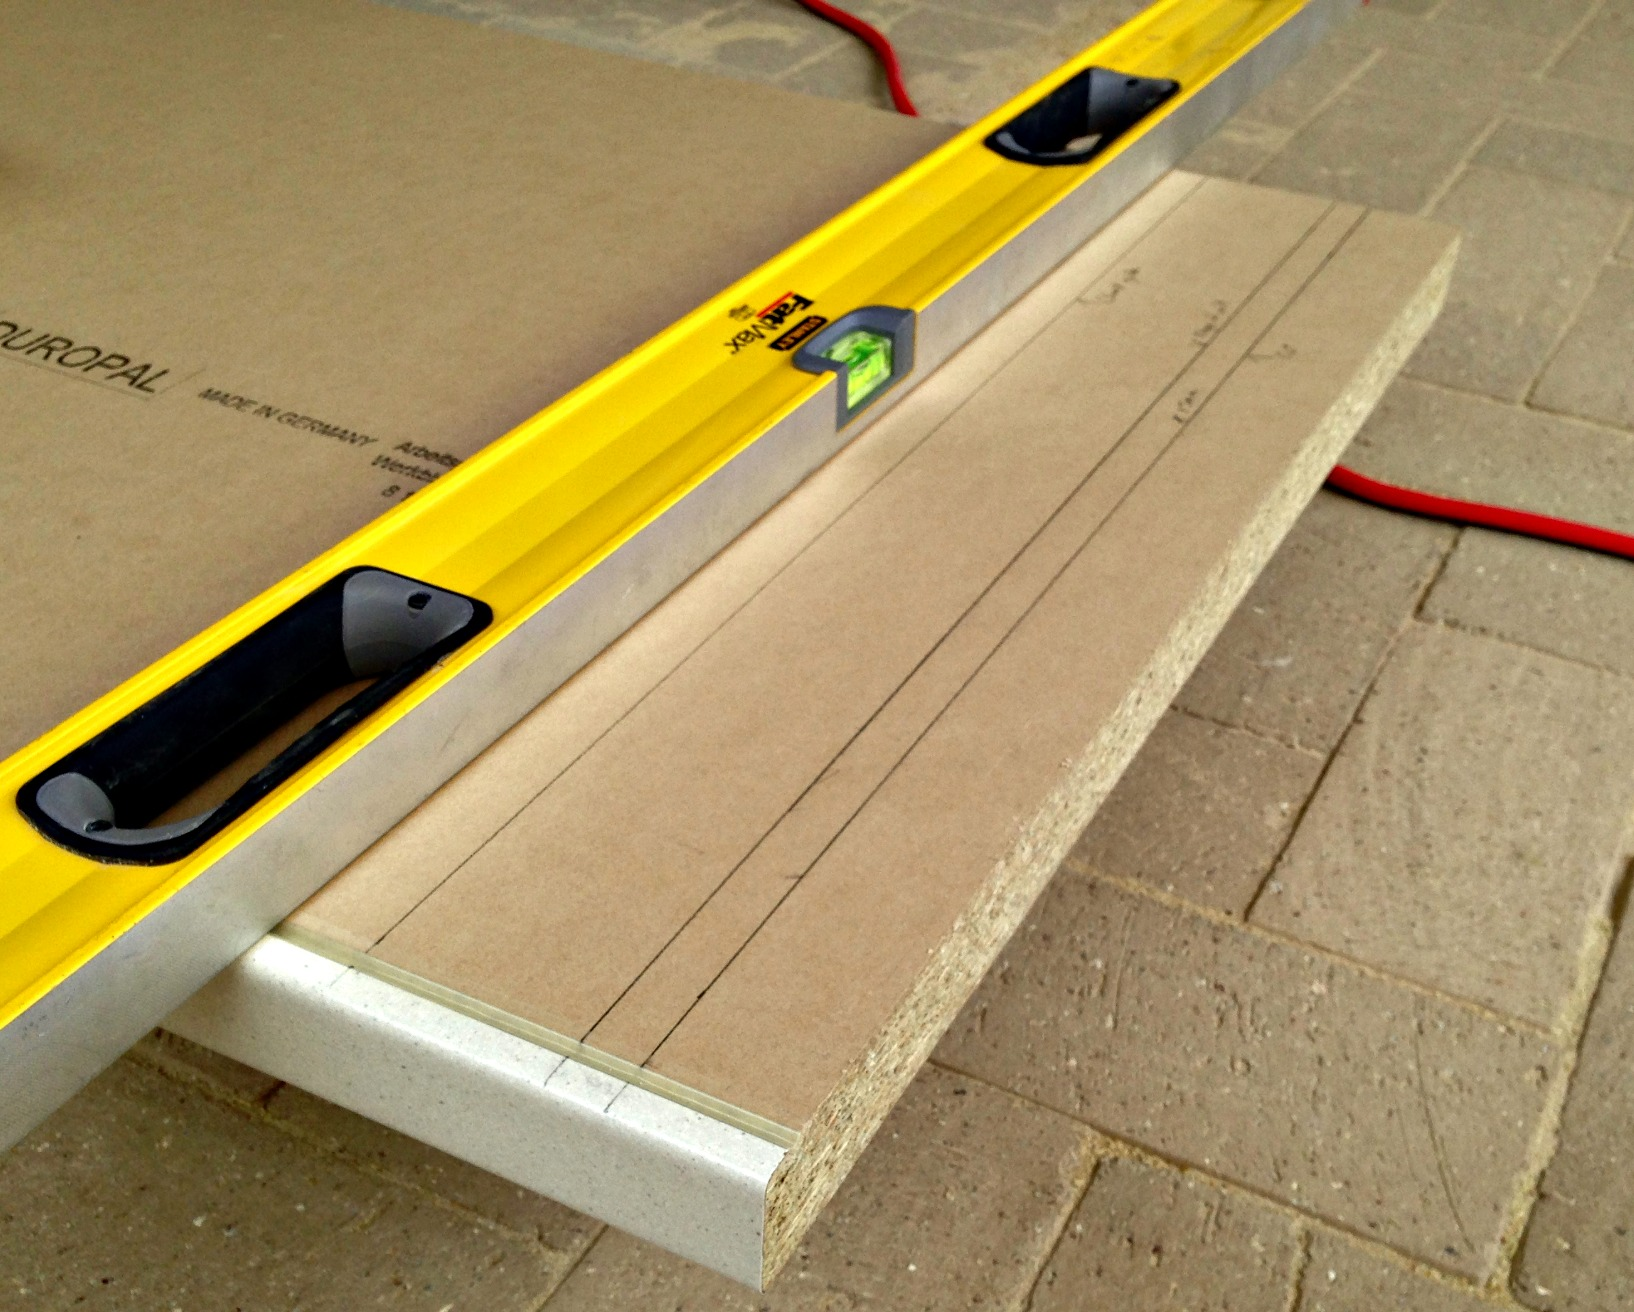 Spirit level clamped to worktop as a straight edge